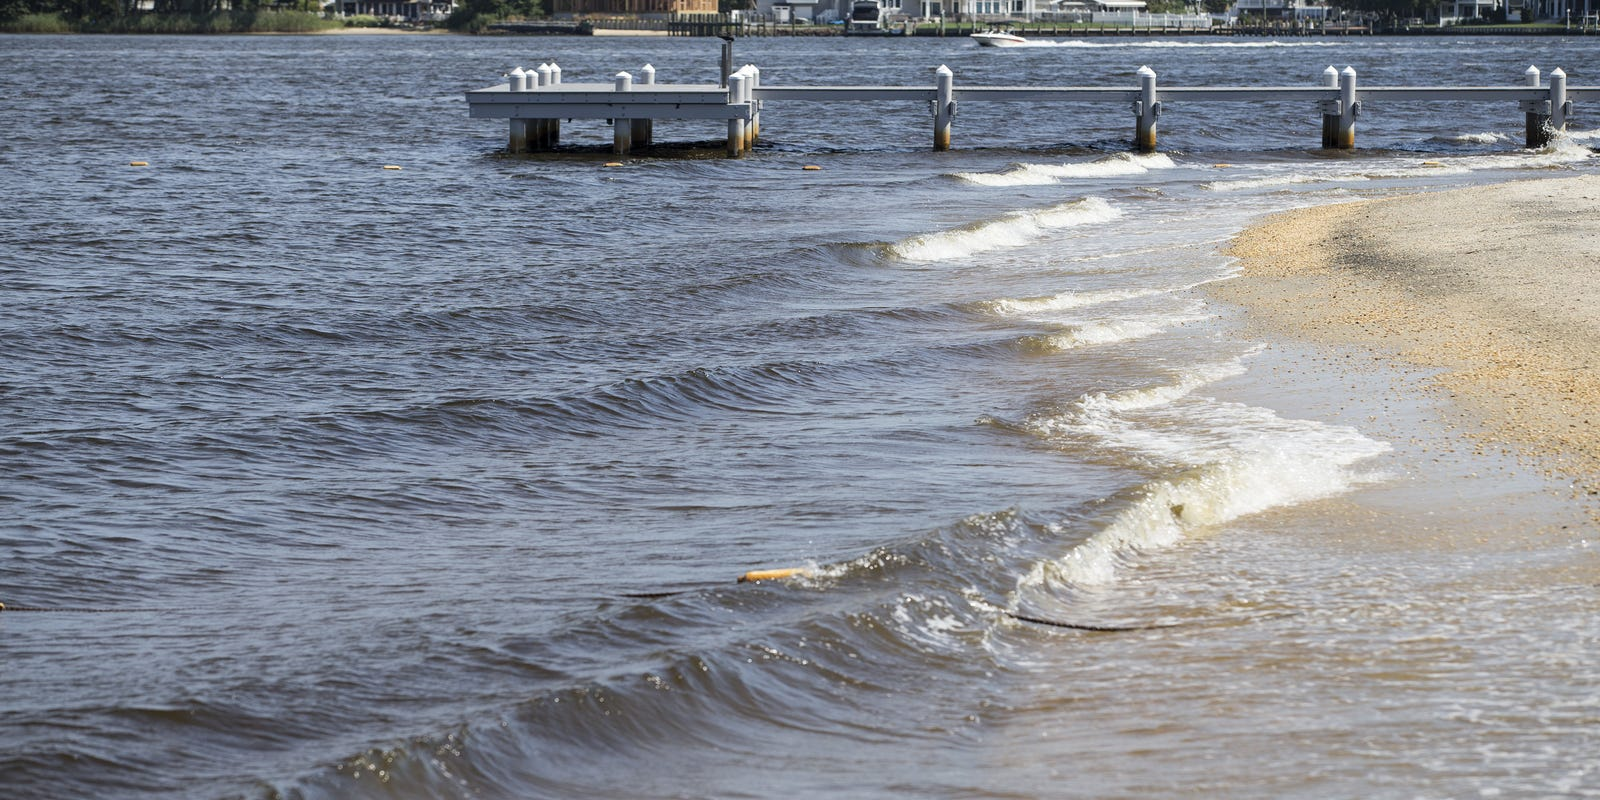 Jersey Shore beaches: 3 Ocean County beaches test high for